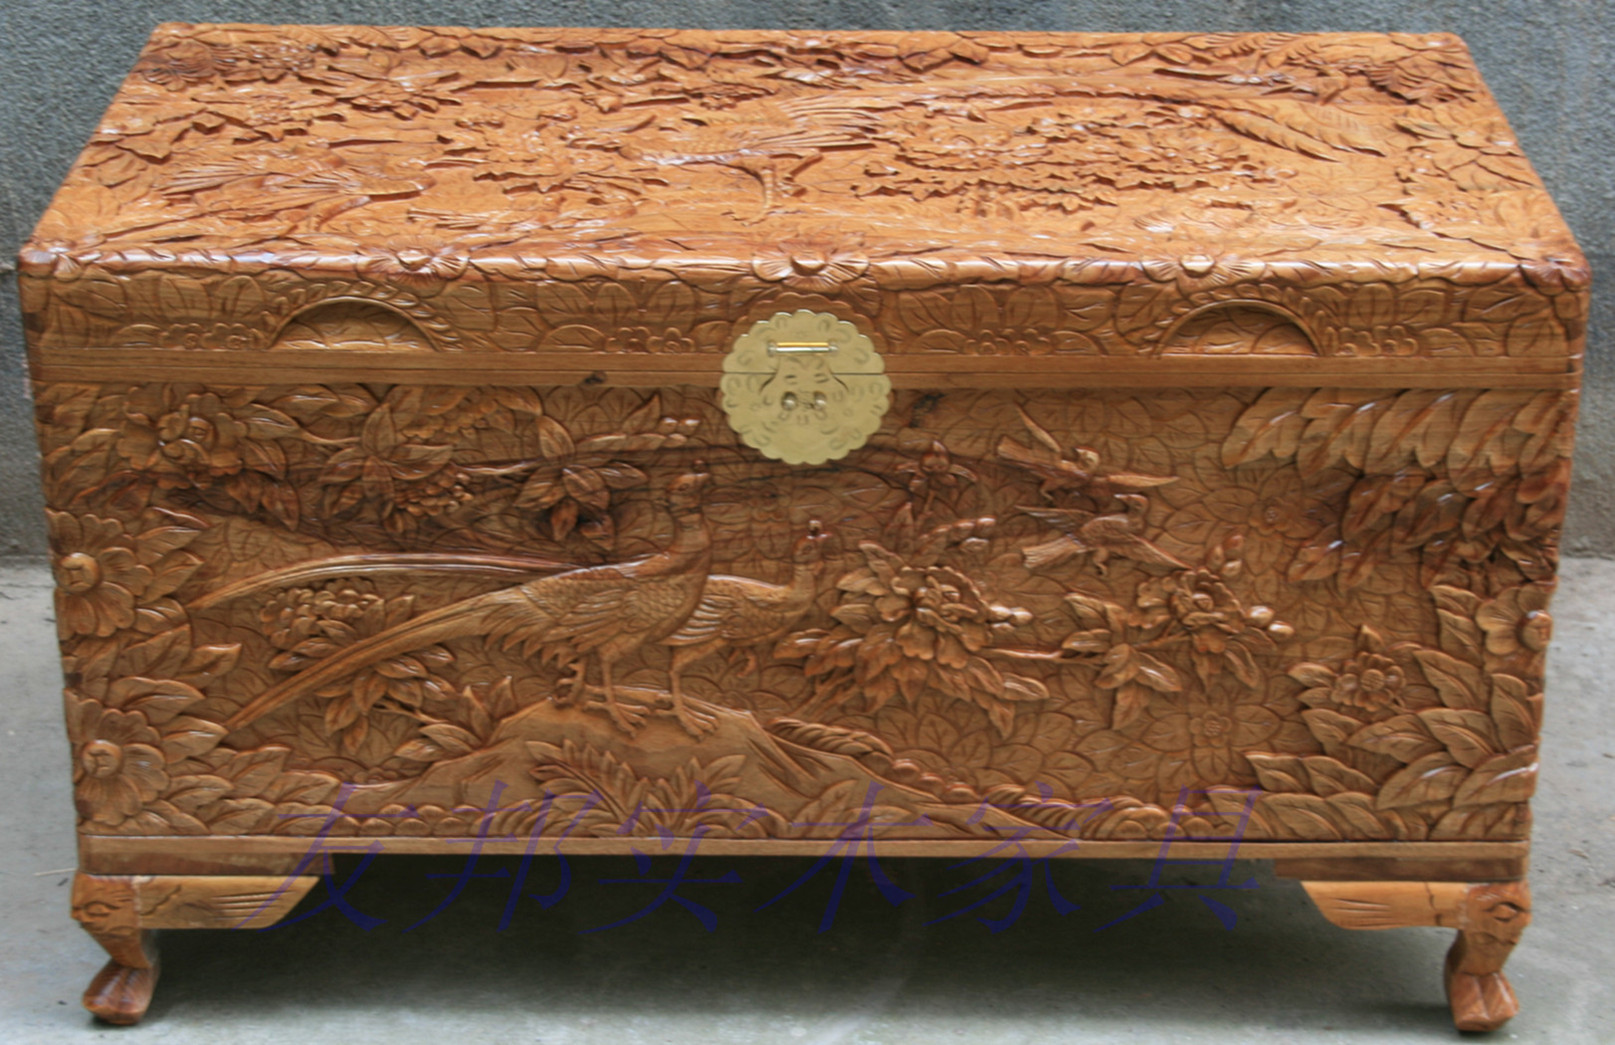 Dongyang Woodcarving Pure Hand Carved Wood Box Suitcase Bainiaozhaofeng Camphor Wood Furniture